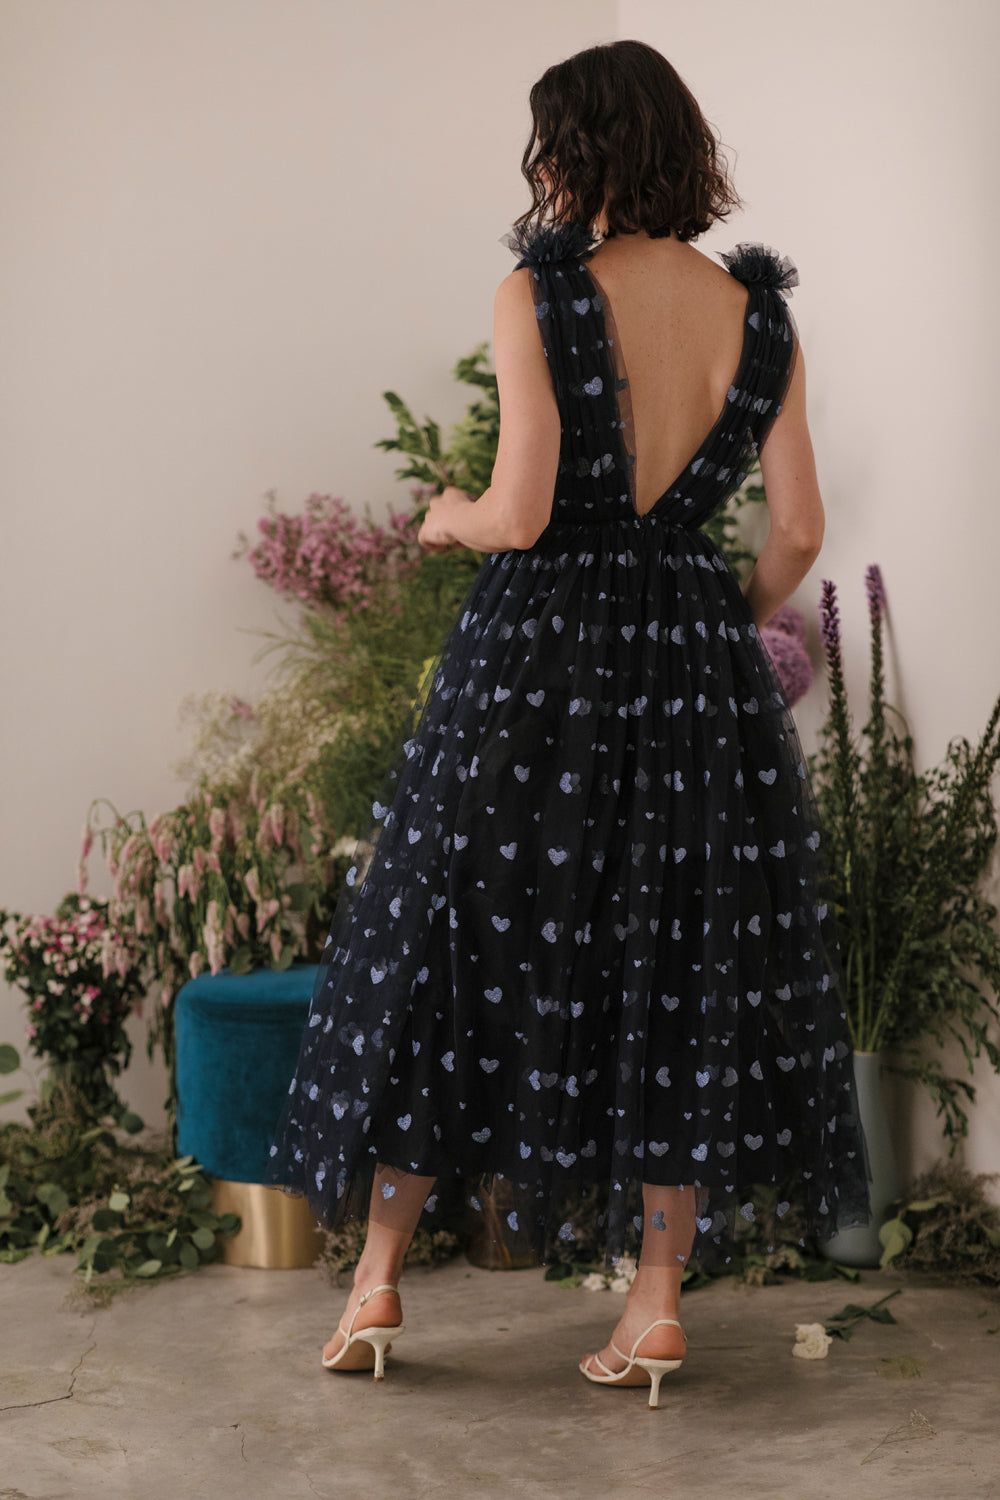 Heather Heart Tulle Dress - SAU LEE